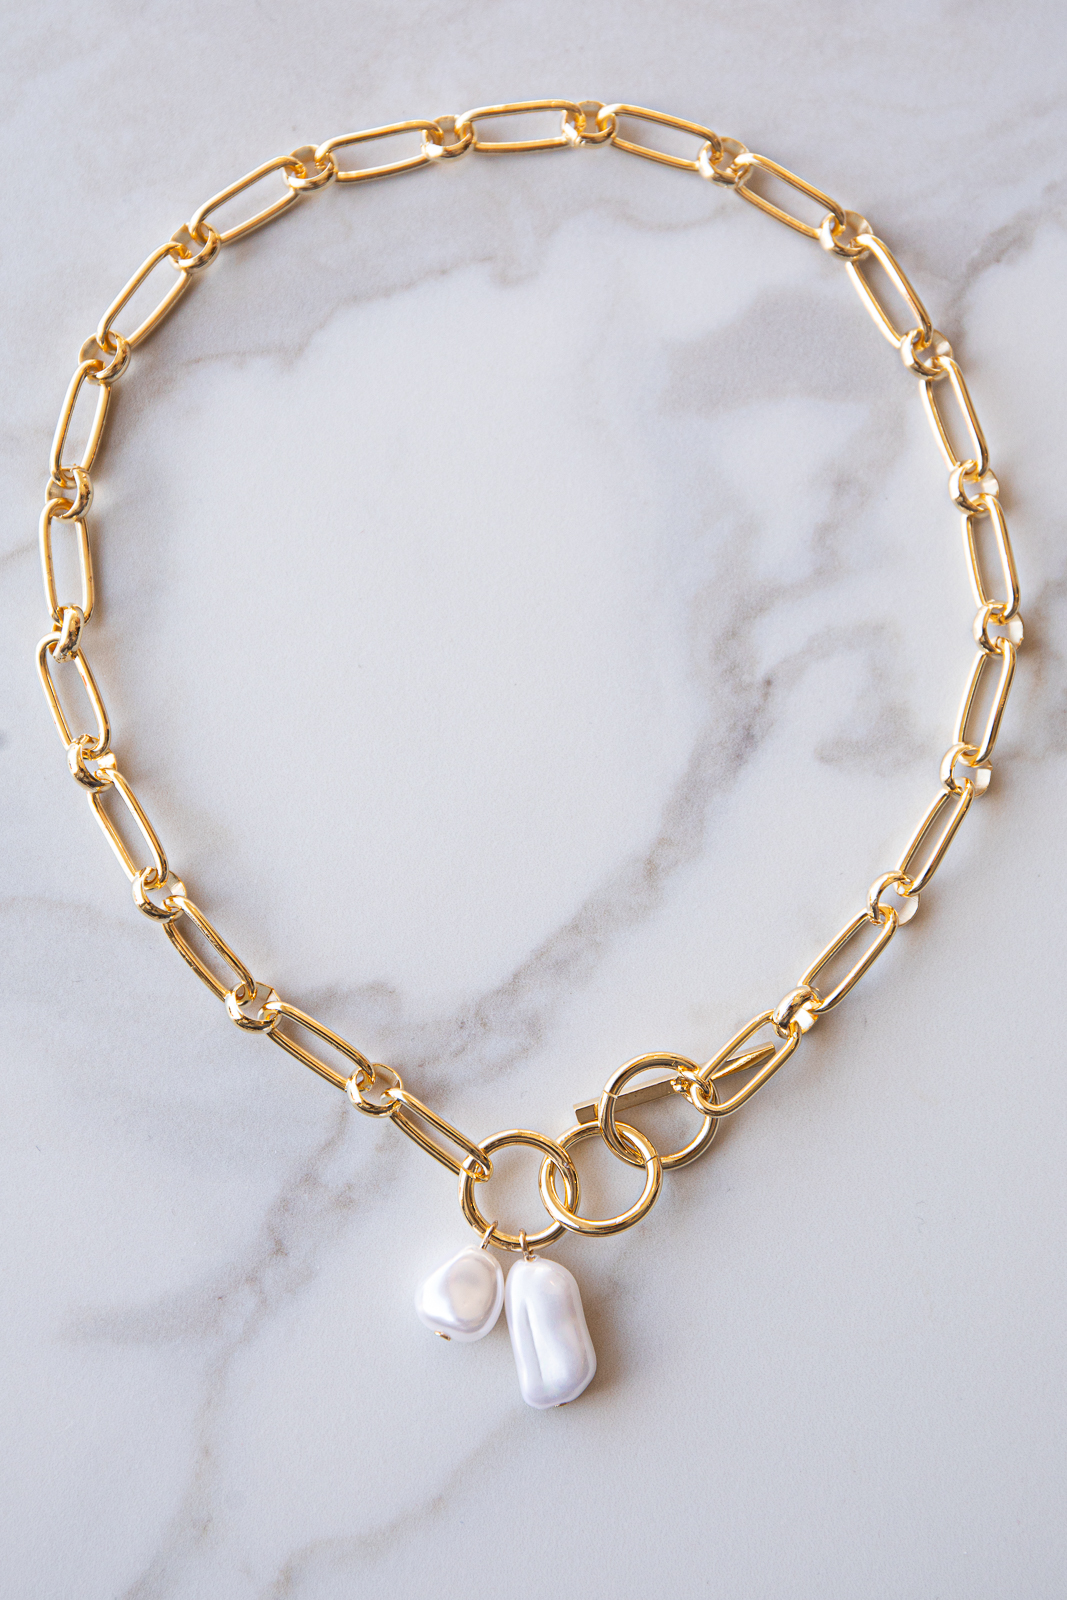 Gold Toggle Chain Short Necklace with Pearl Pendants